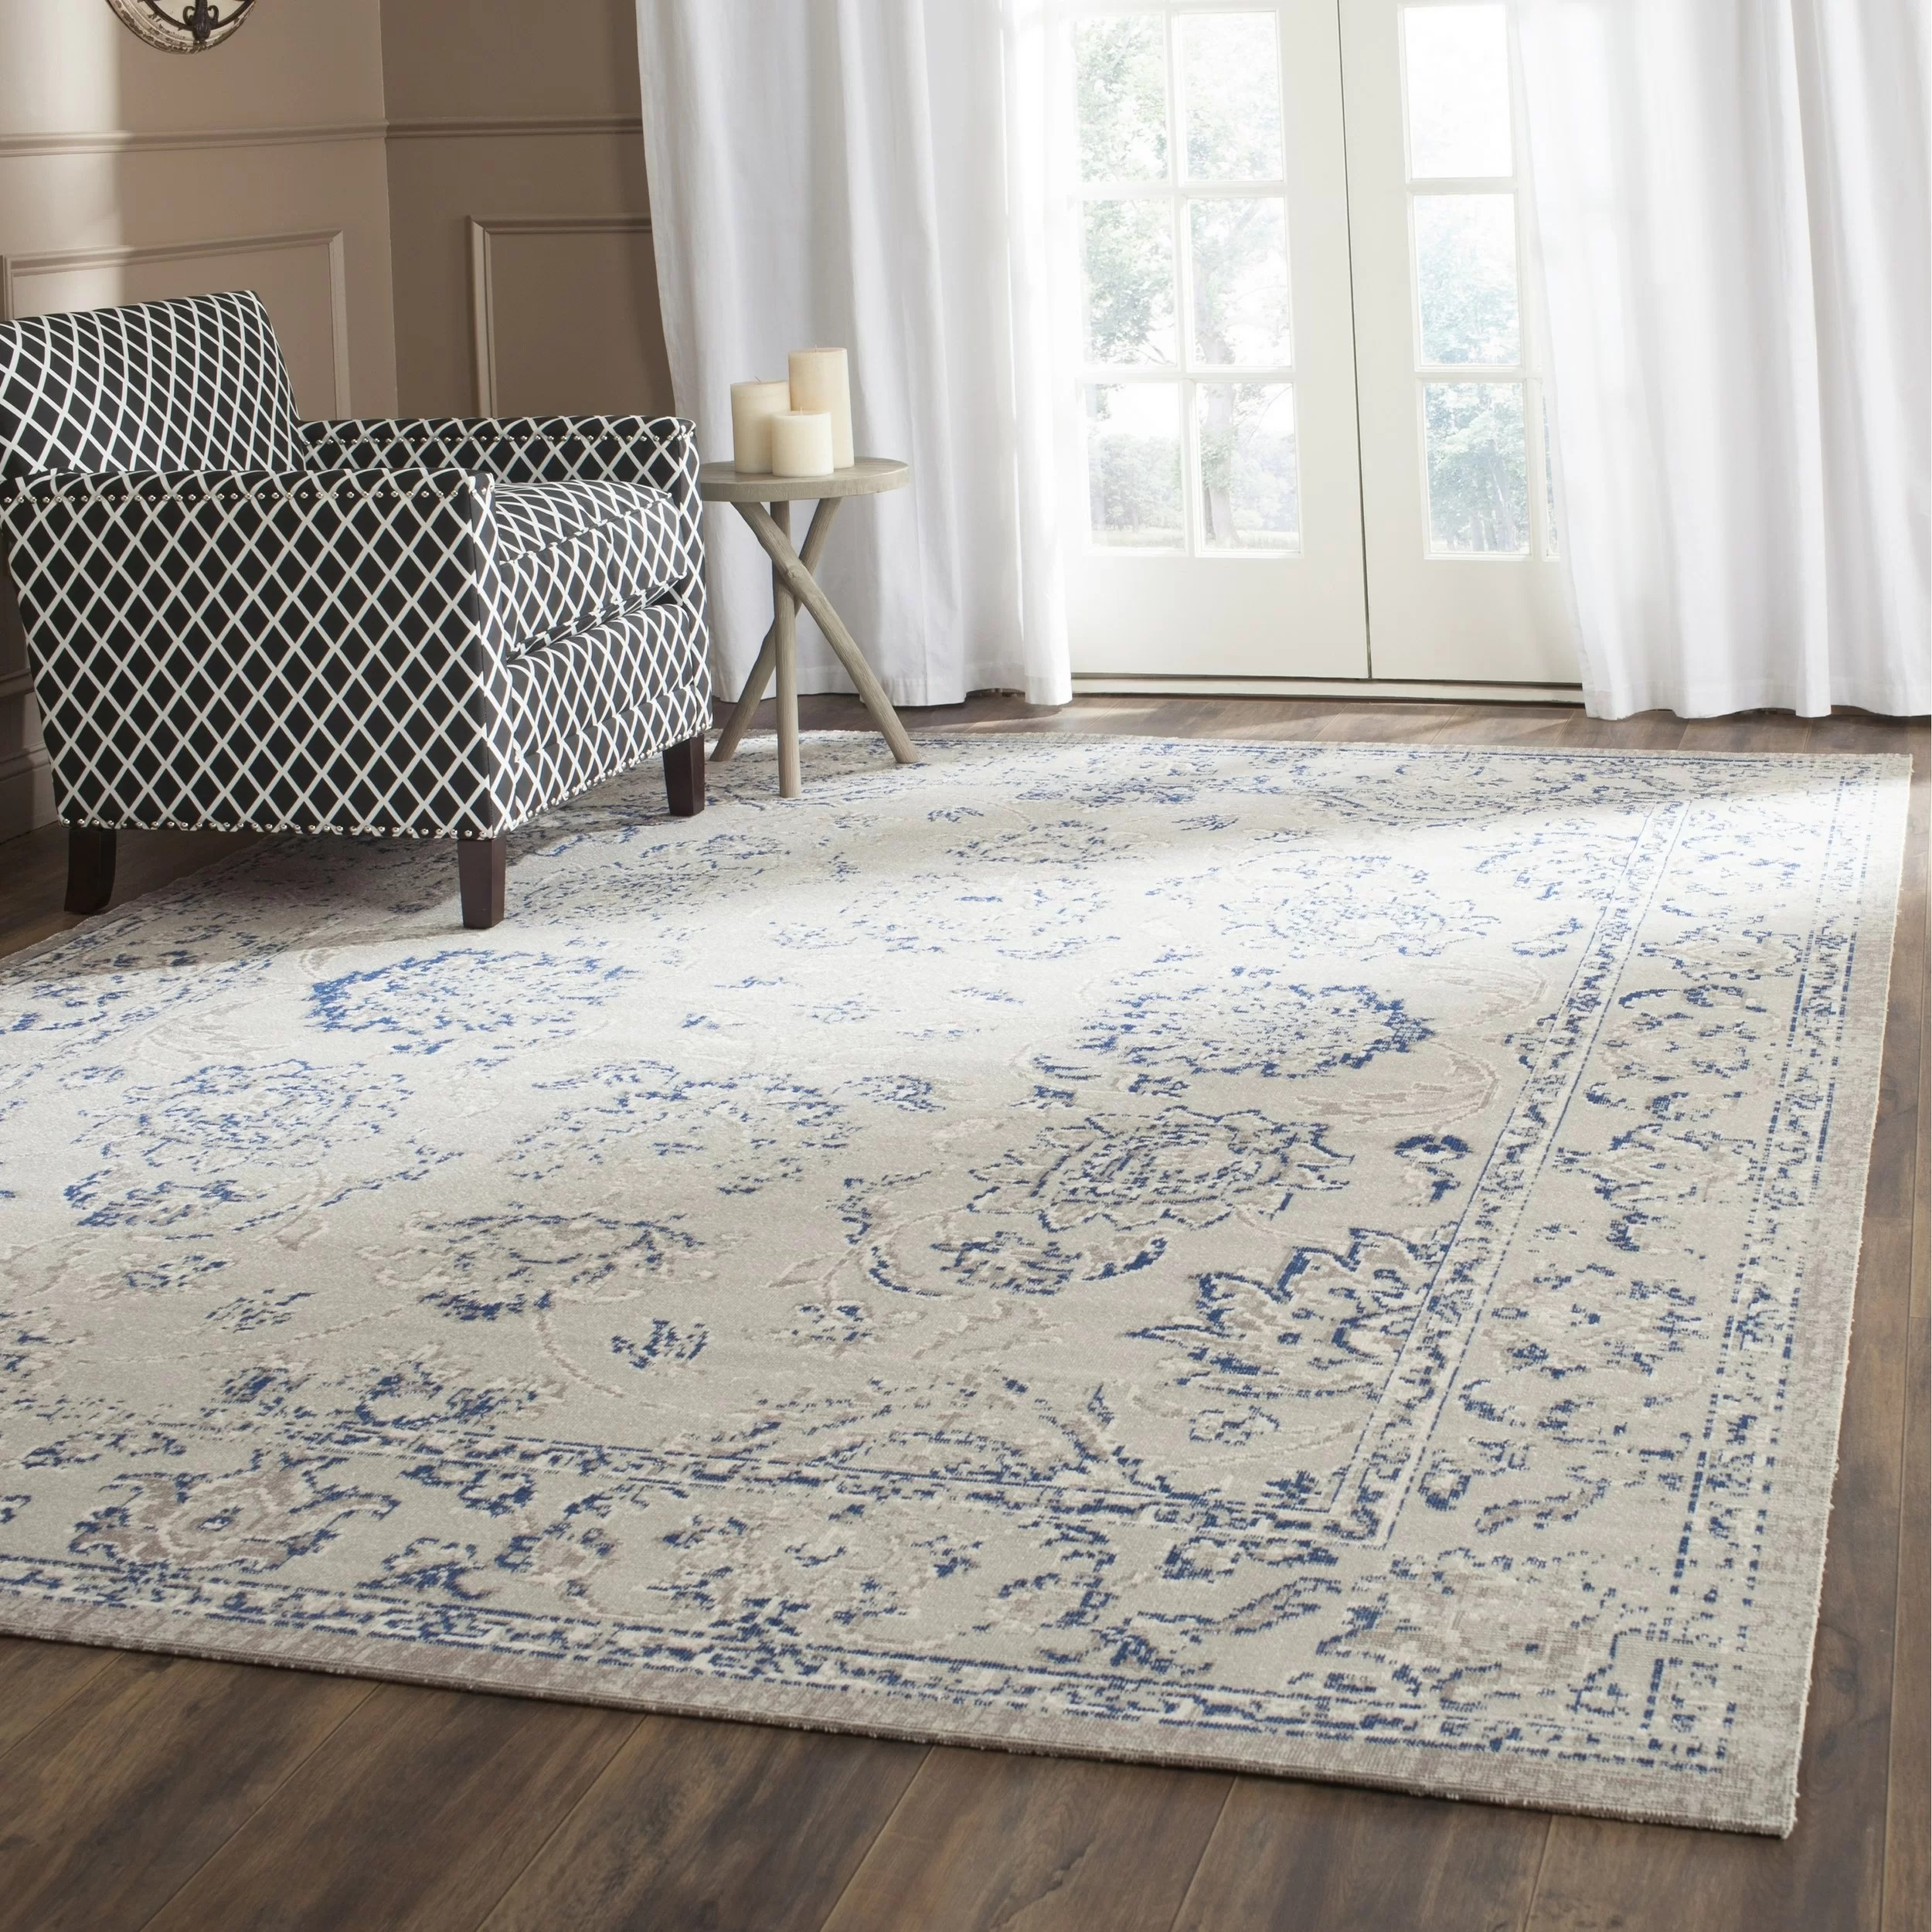 Safavieh Patina Grey  Blue Area Rug  Reviews  Wayfairca